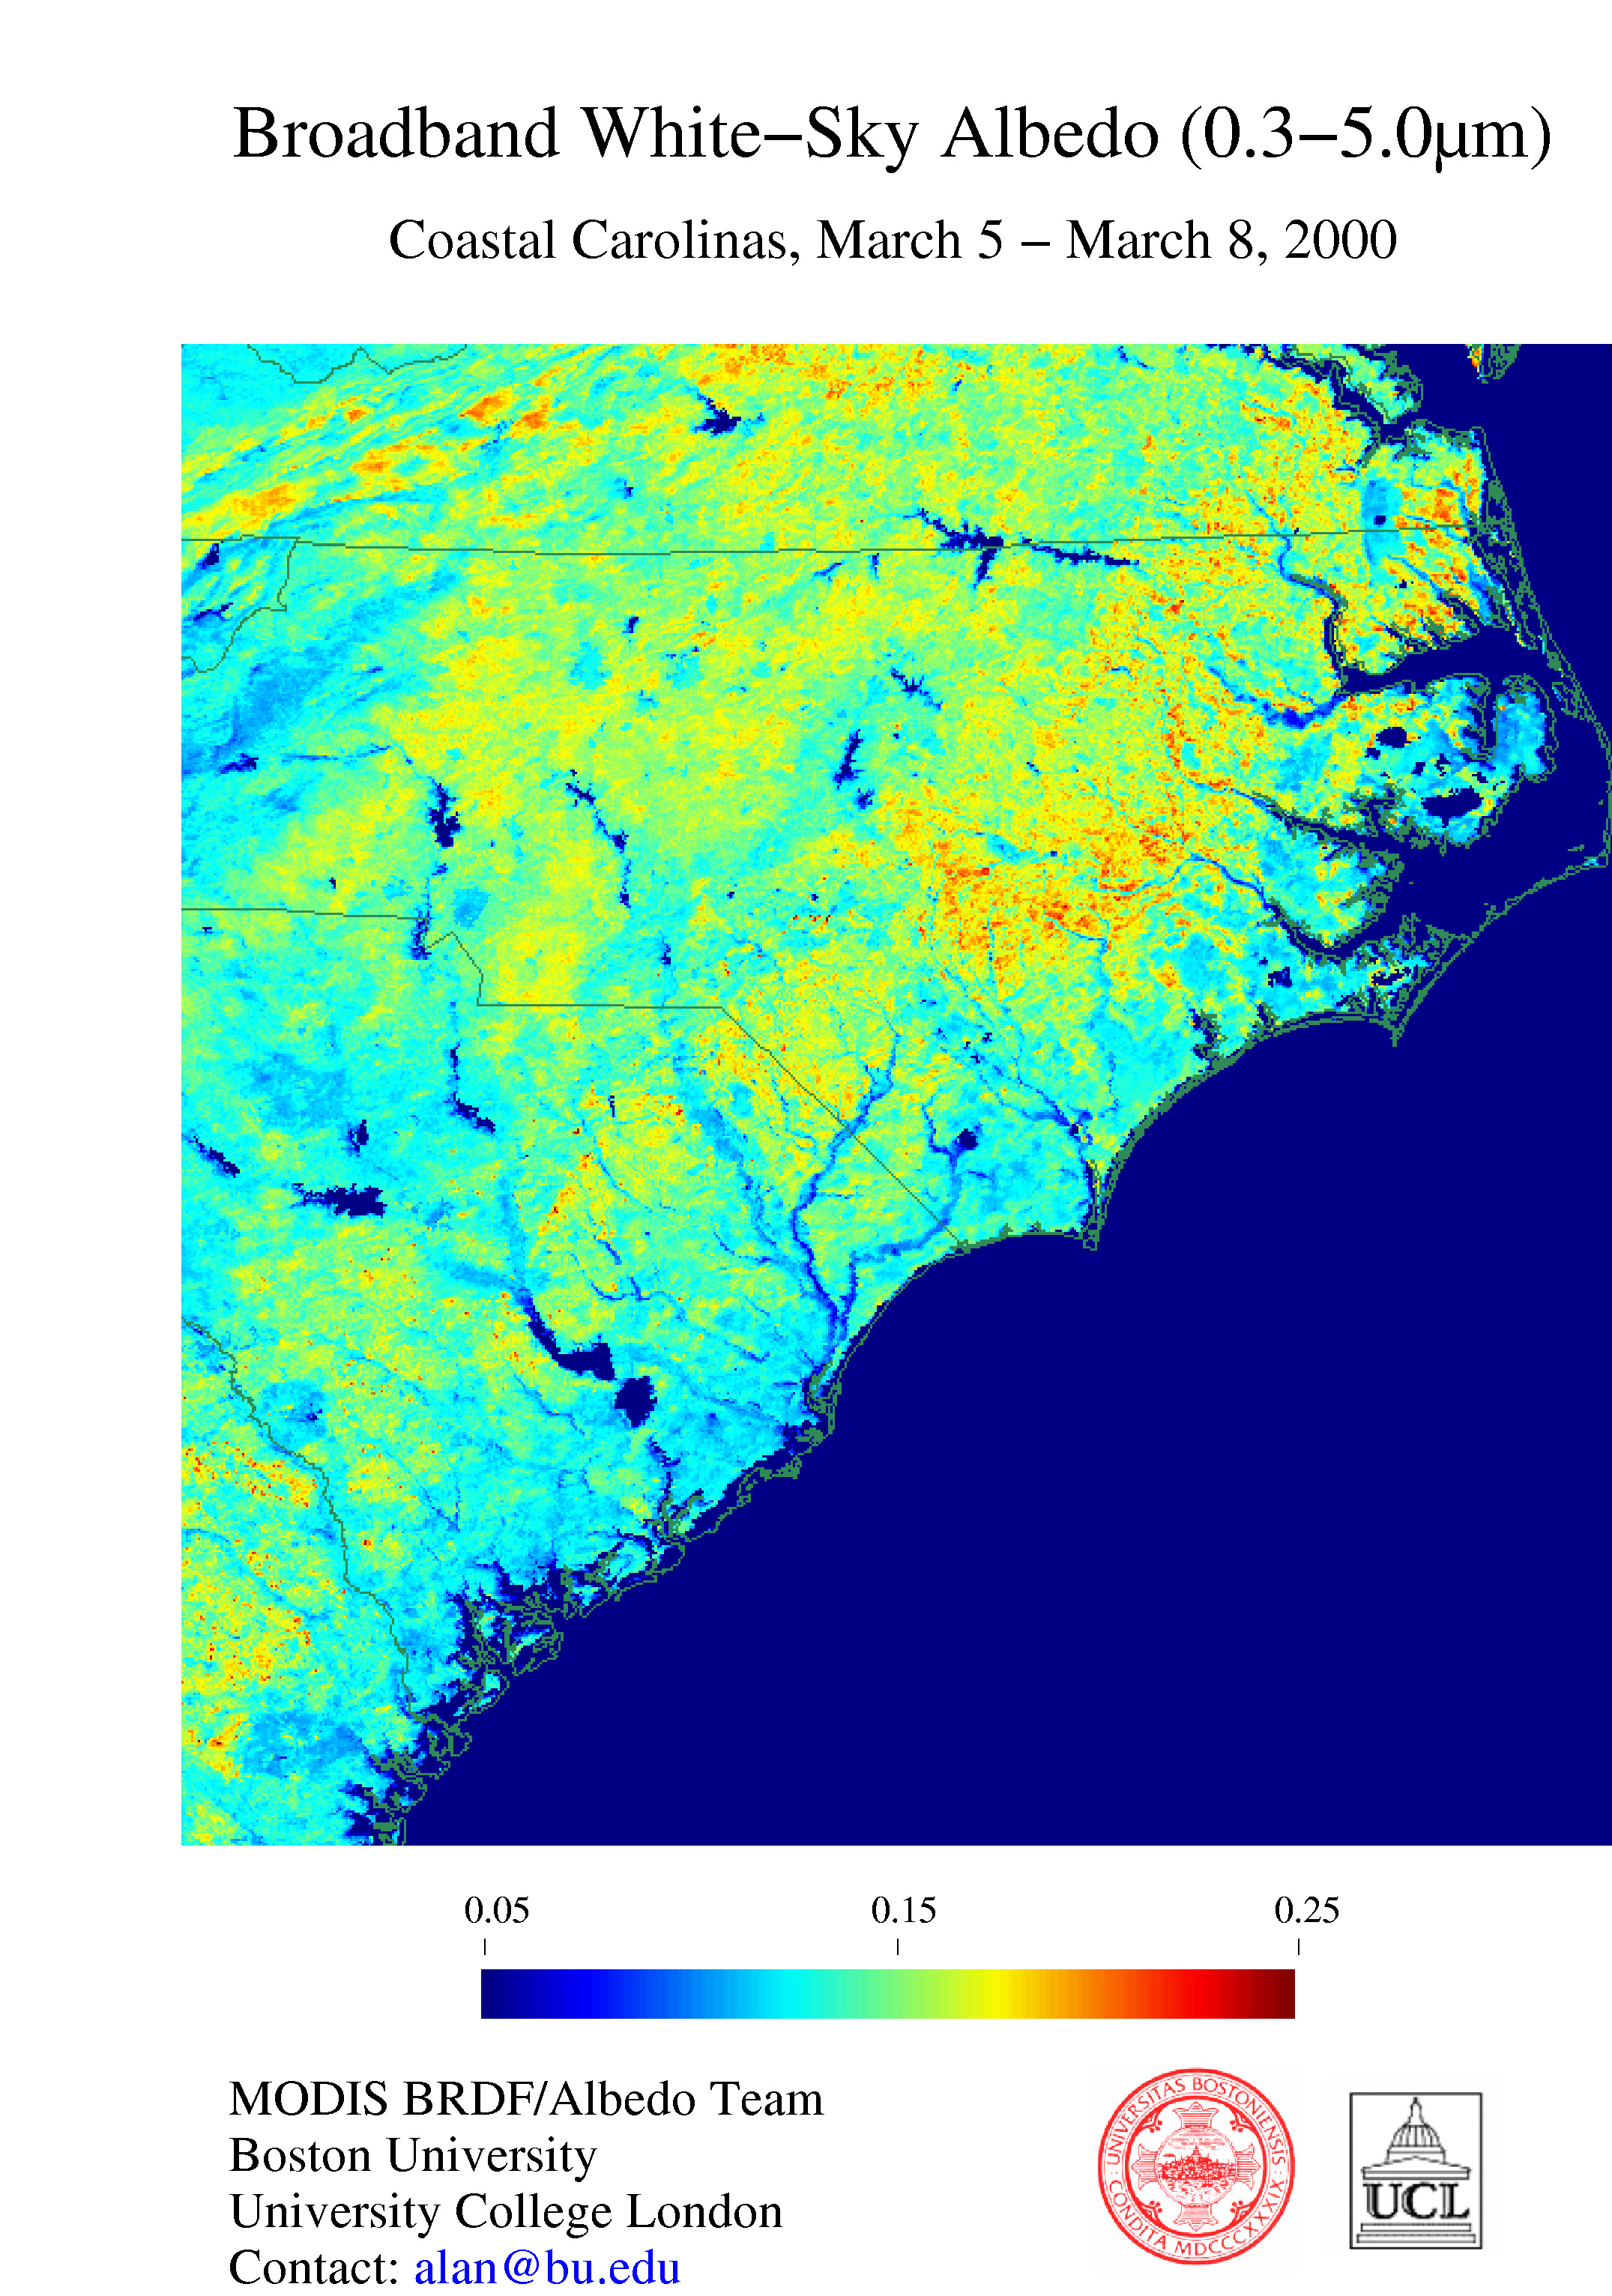 Broadband White-Sky Albedo (0.3 - 0.5 microns) - Coastal Carolinas, March 5 - March 8, 2000 - related image preview